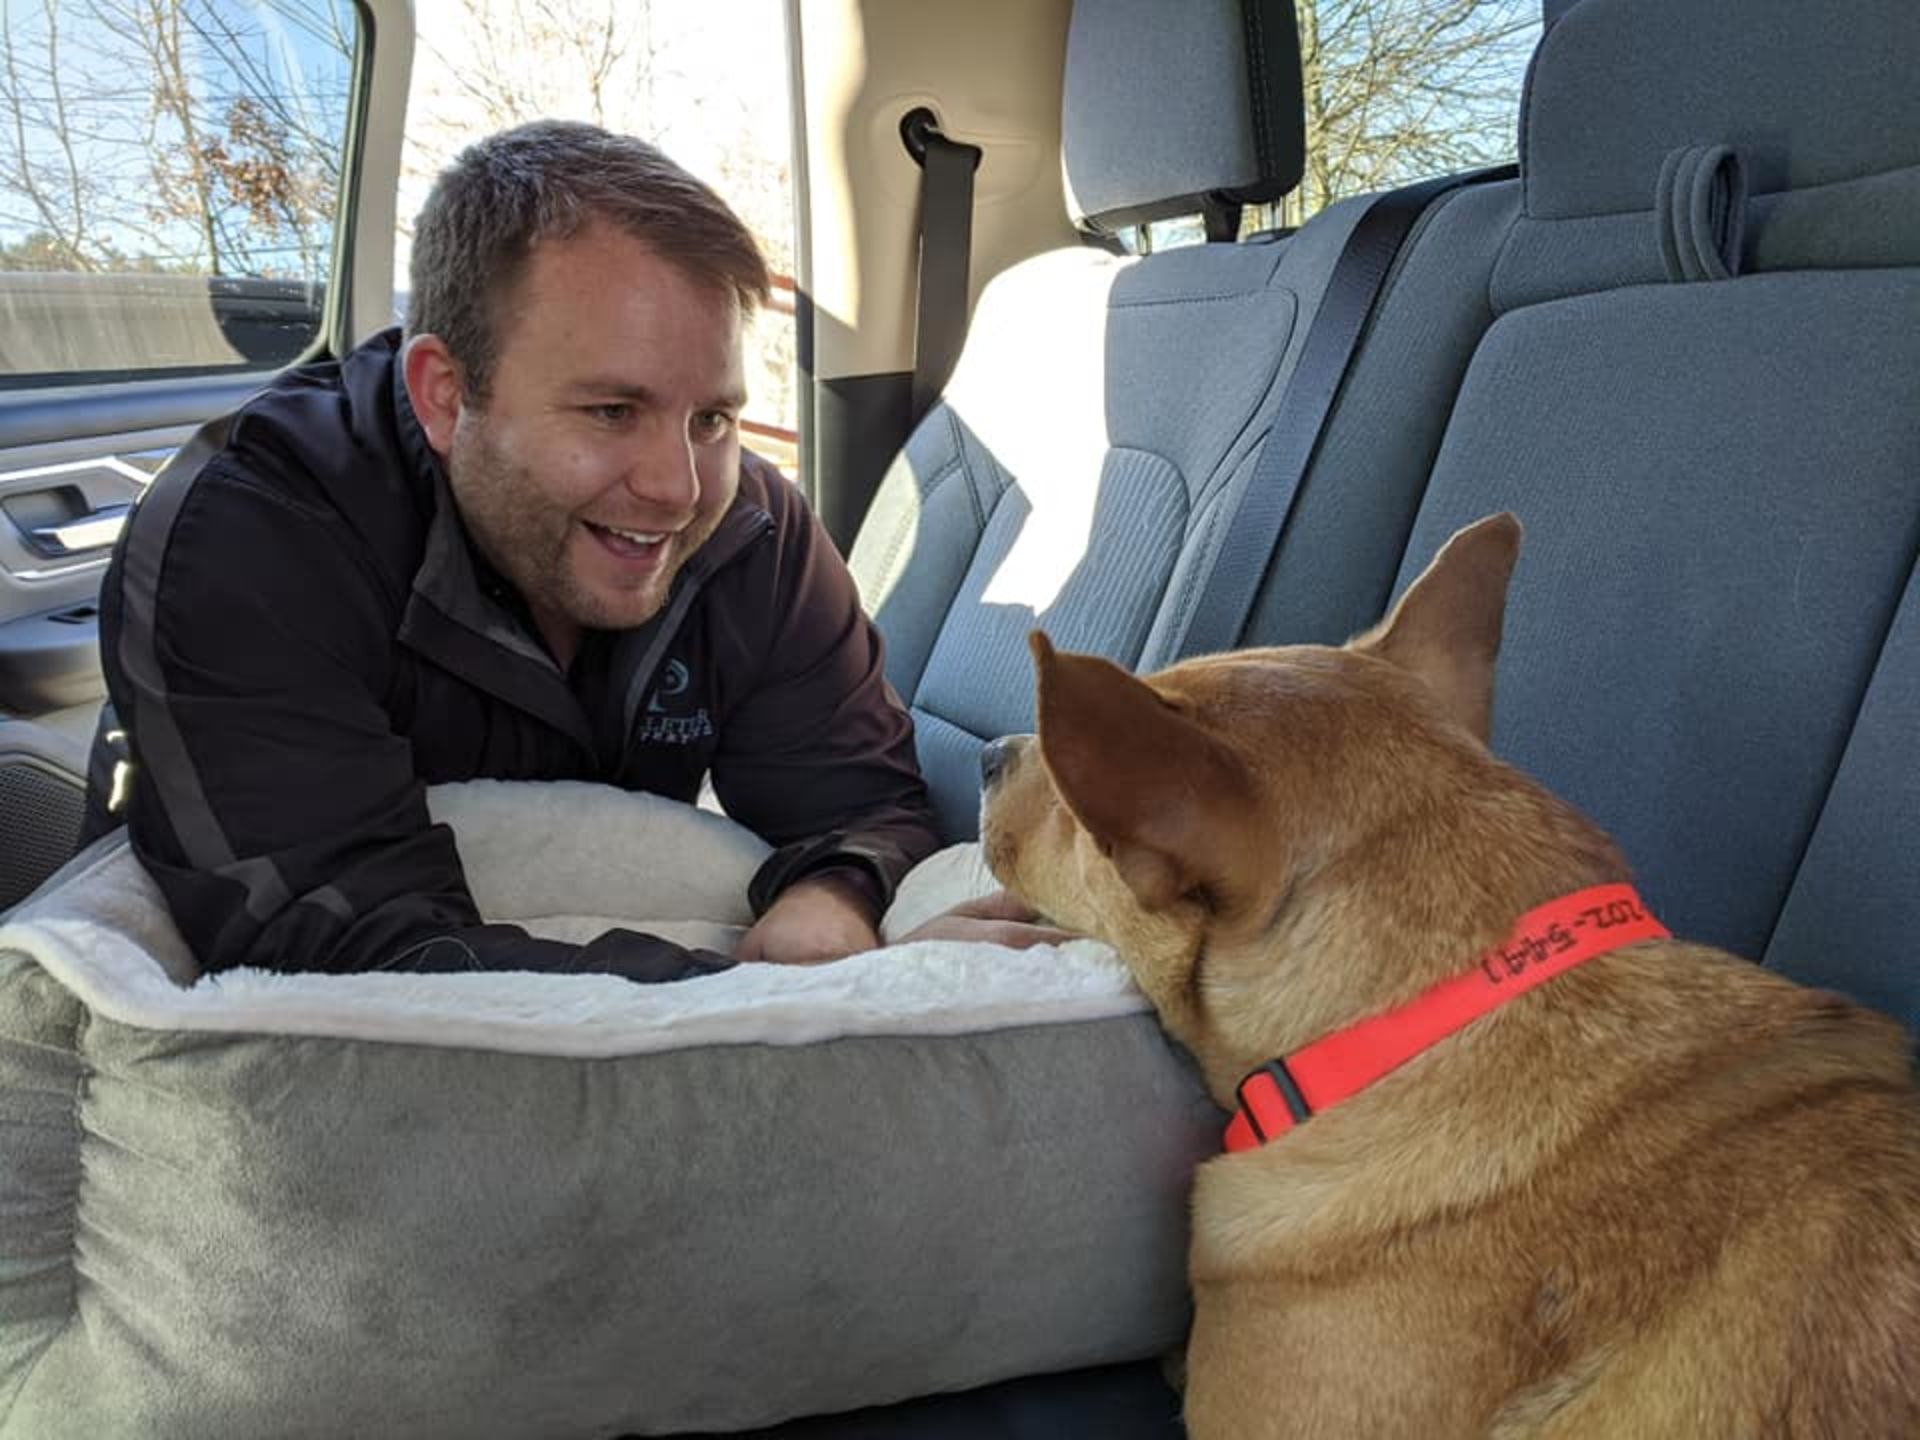 When a Dog Rescue Breaks Out in the Midst of a Closing: Feel Good Story of the Month